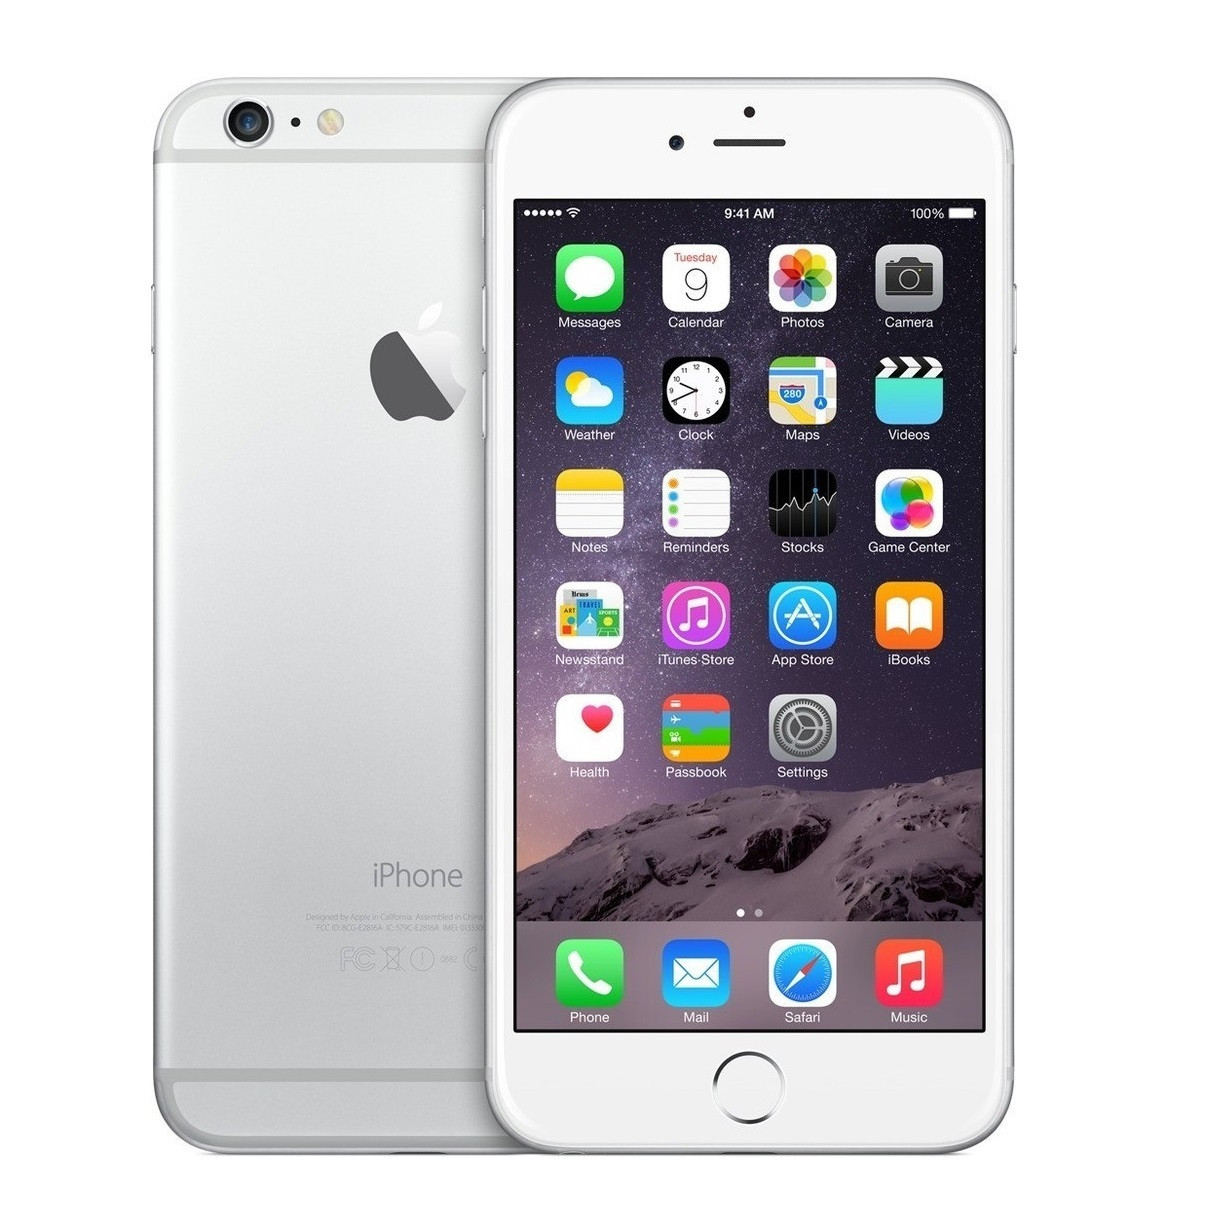 iphone 6 plus 16gb apple cpo iphone 6 plus 16gb unlocked smartphone a1524 2490